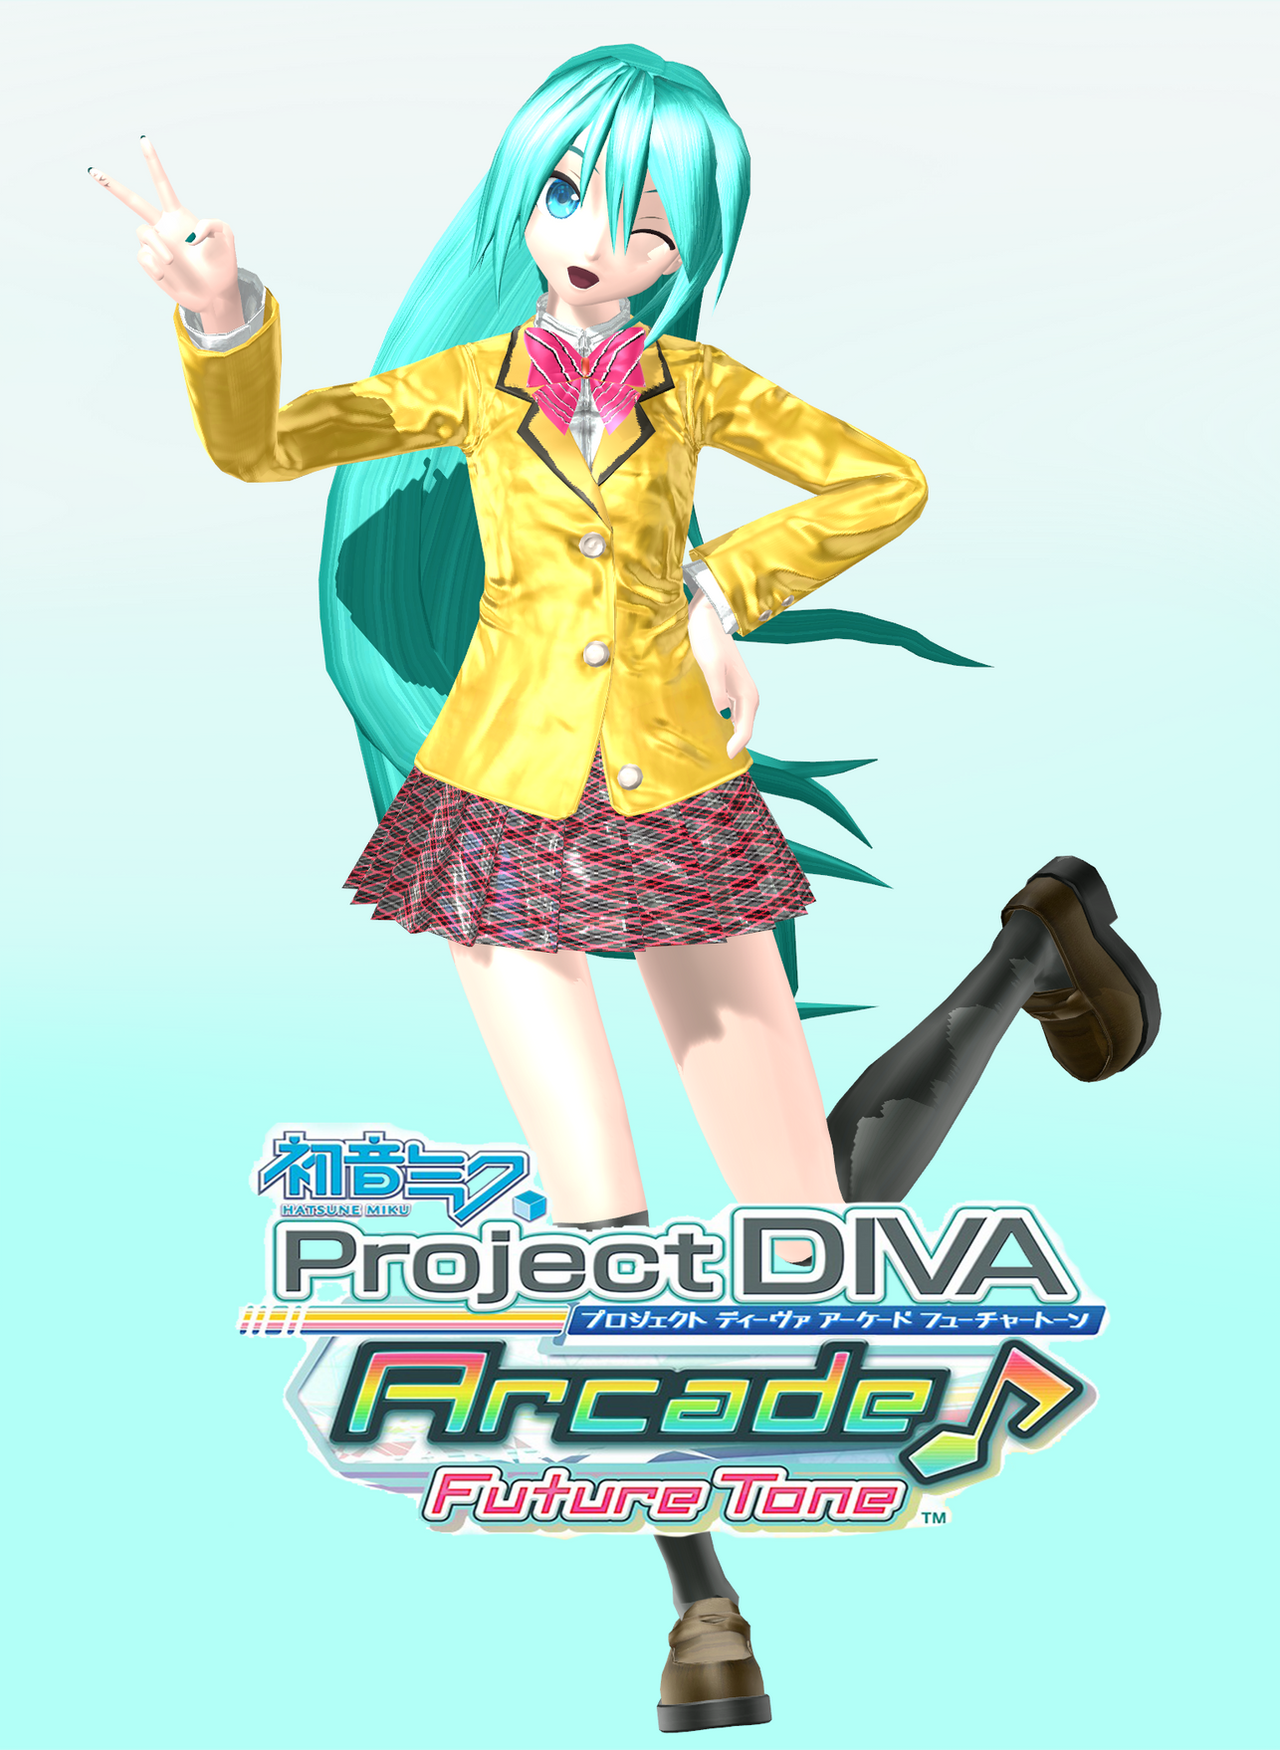 Download PDAFT Hatsune Miku Cosplay Anime by johnjan11